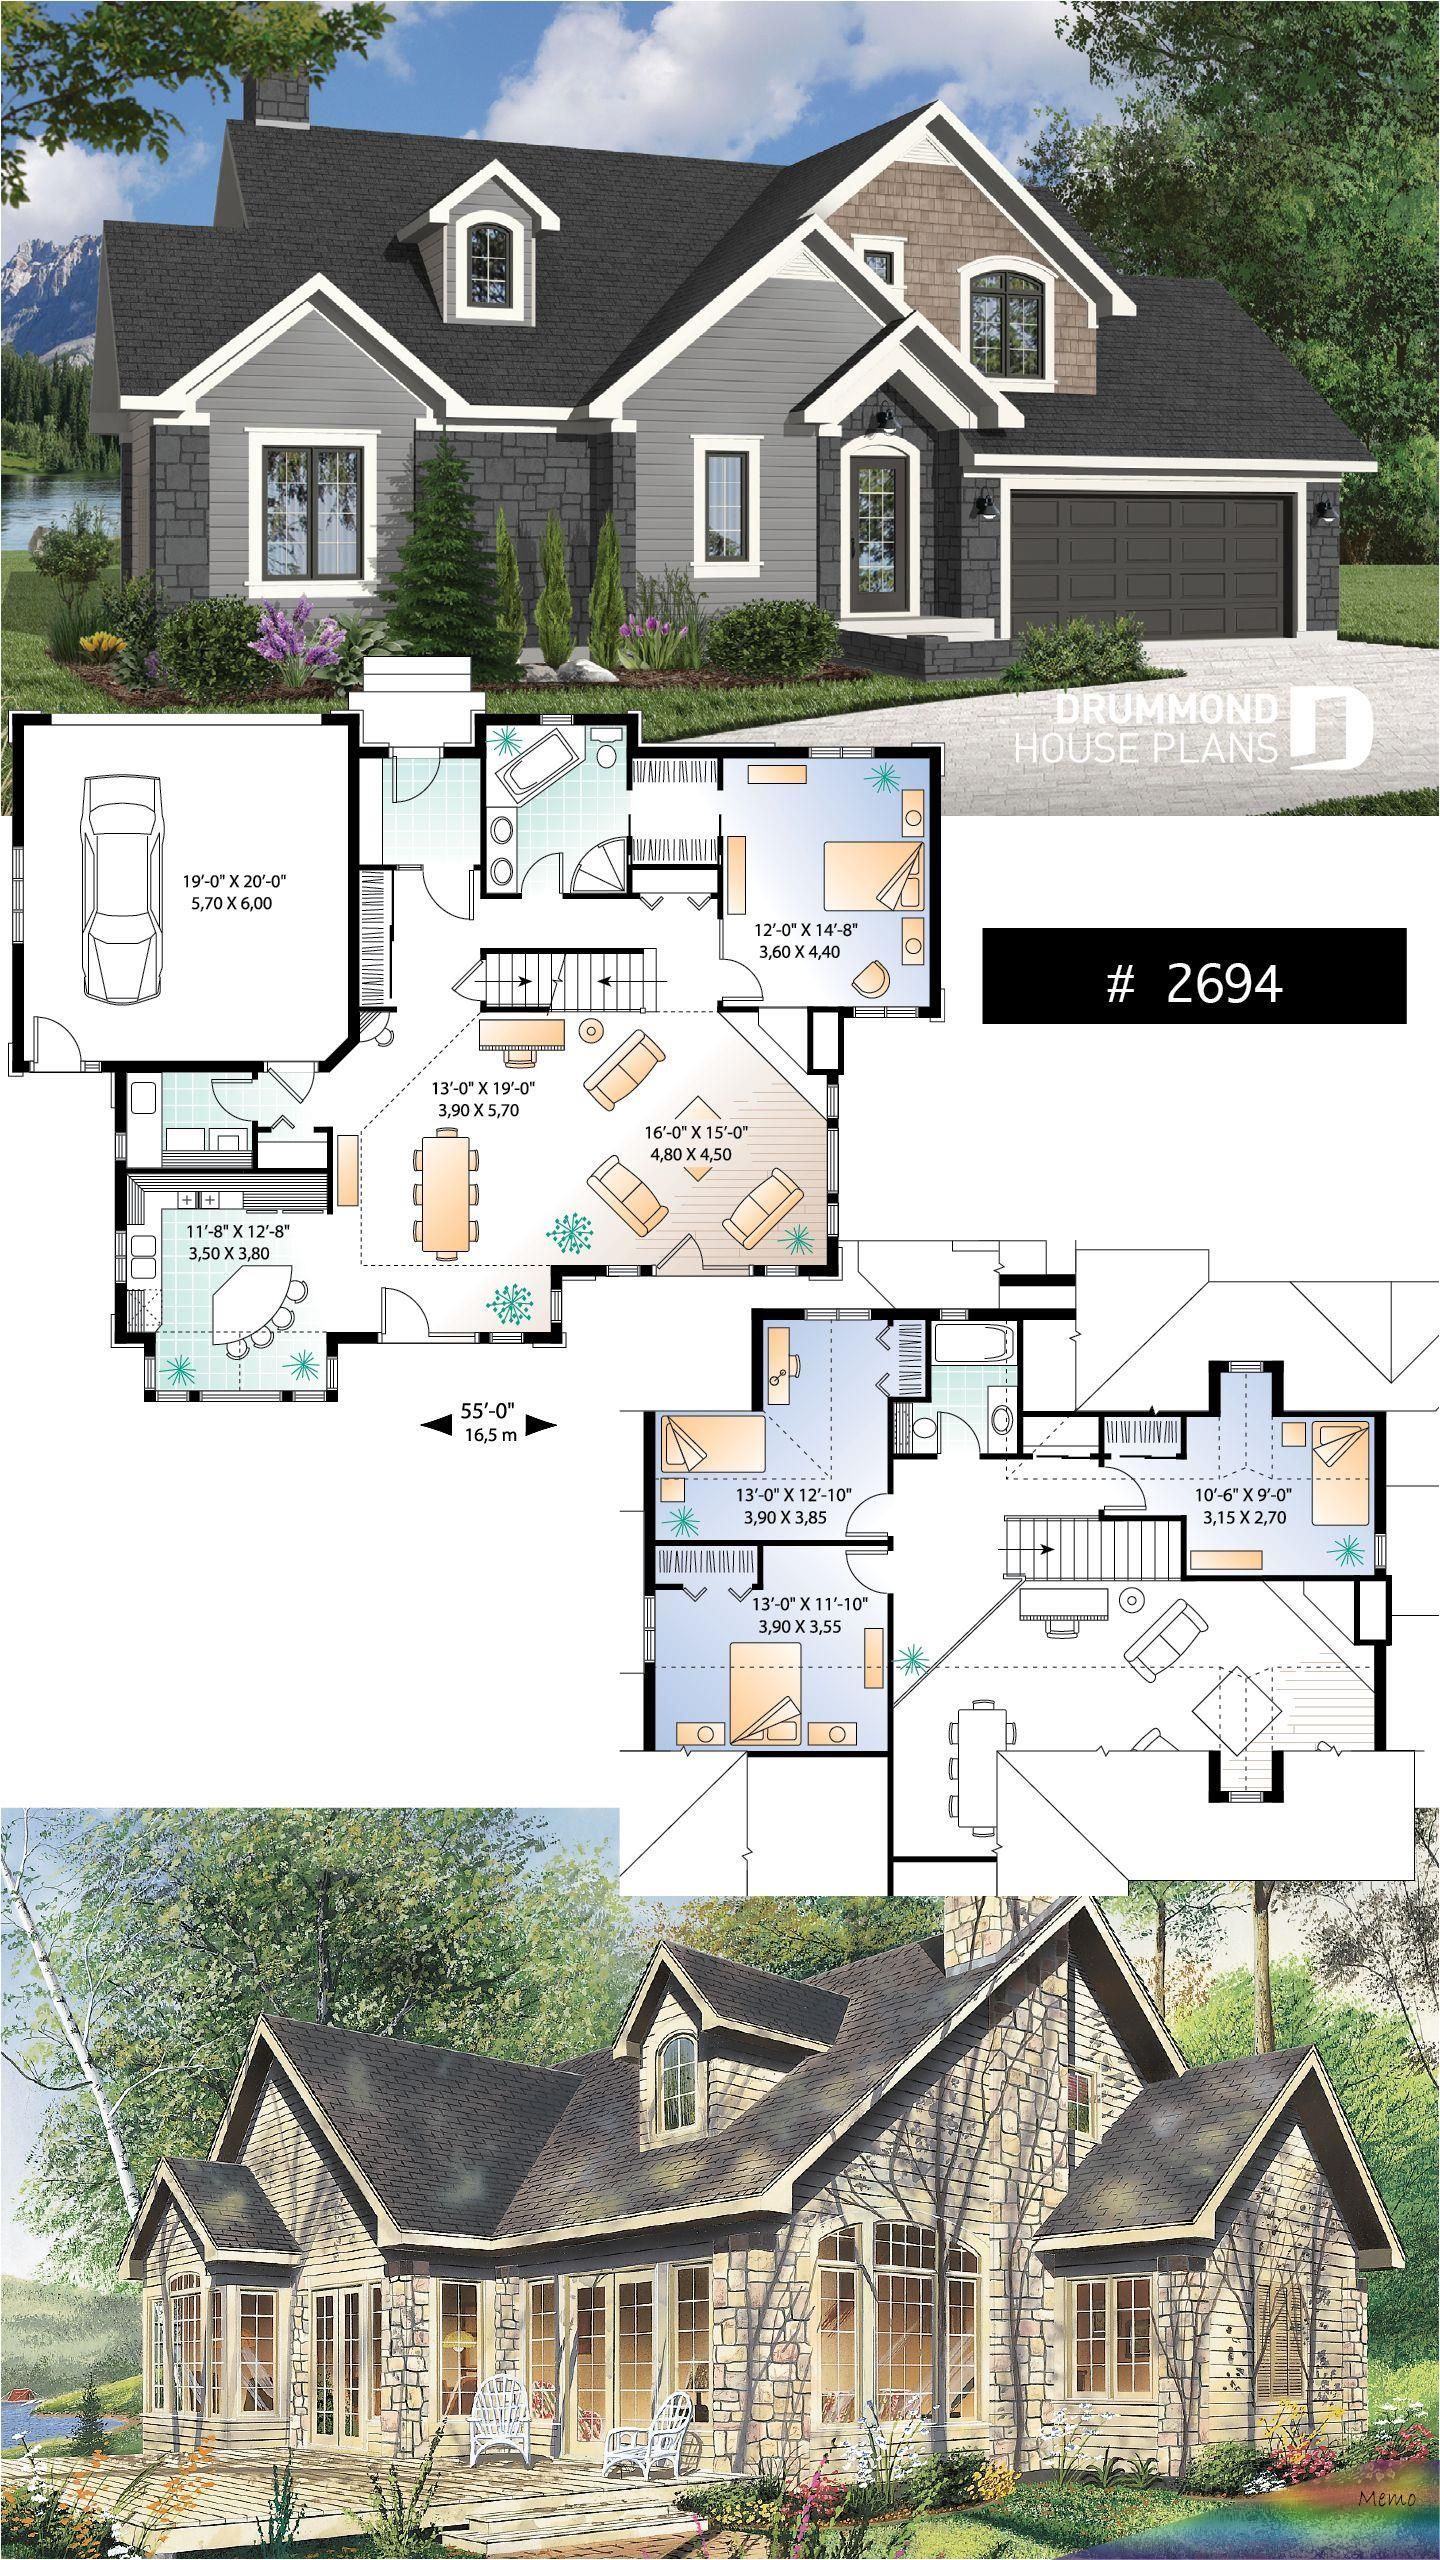 Jan 23 2019 Entirely Open Activity Area Towards The Back Of The House Cathedral Ceiling In Living Room And D In 2020 Sims House Design Sims House Plans House Plans